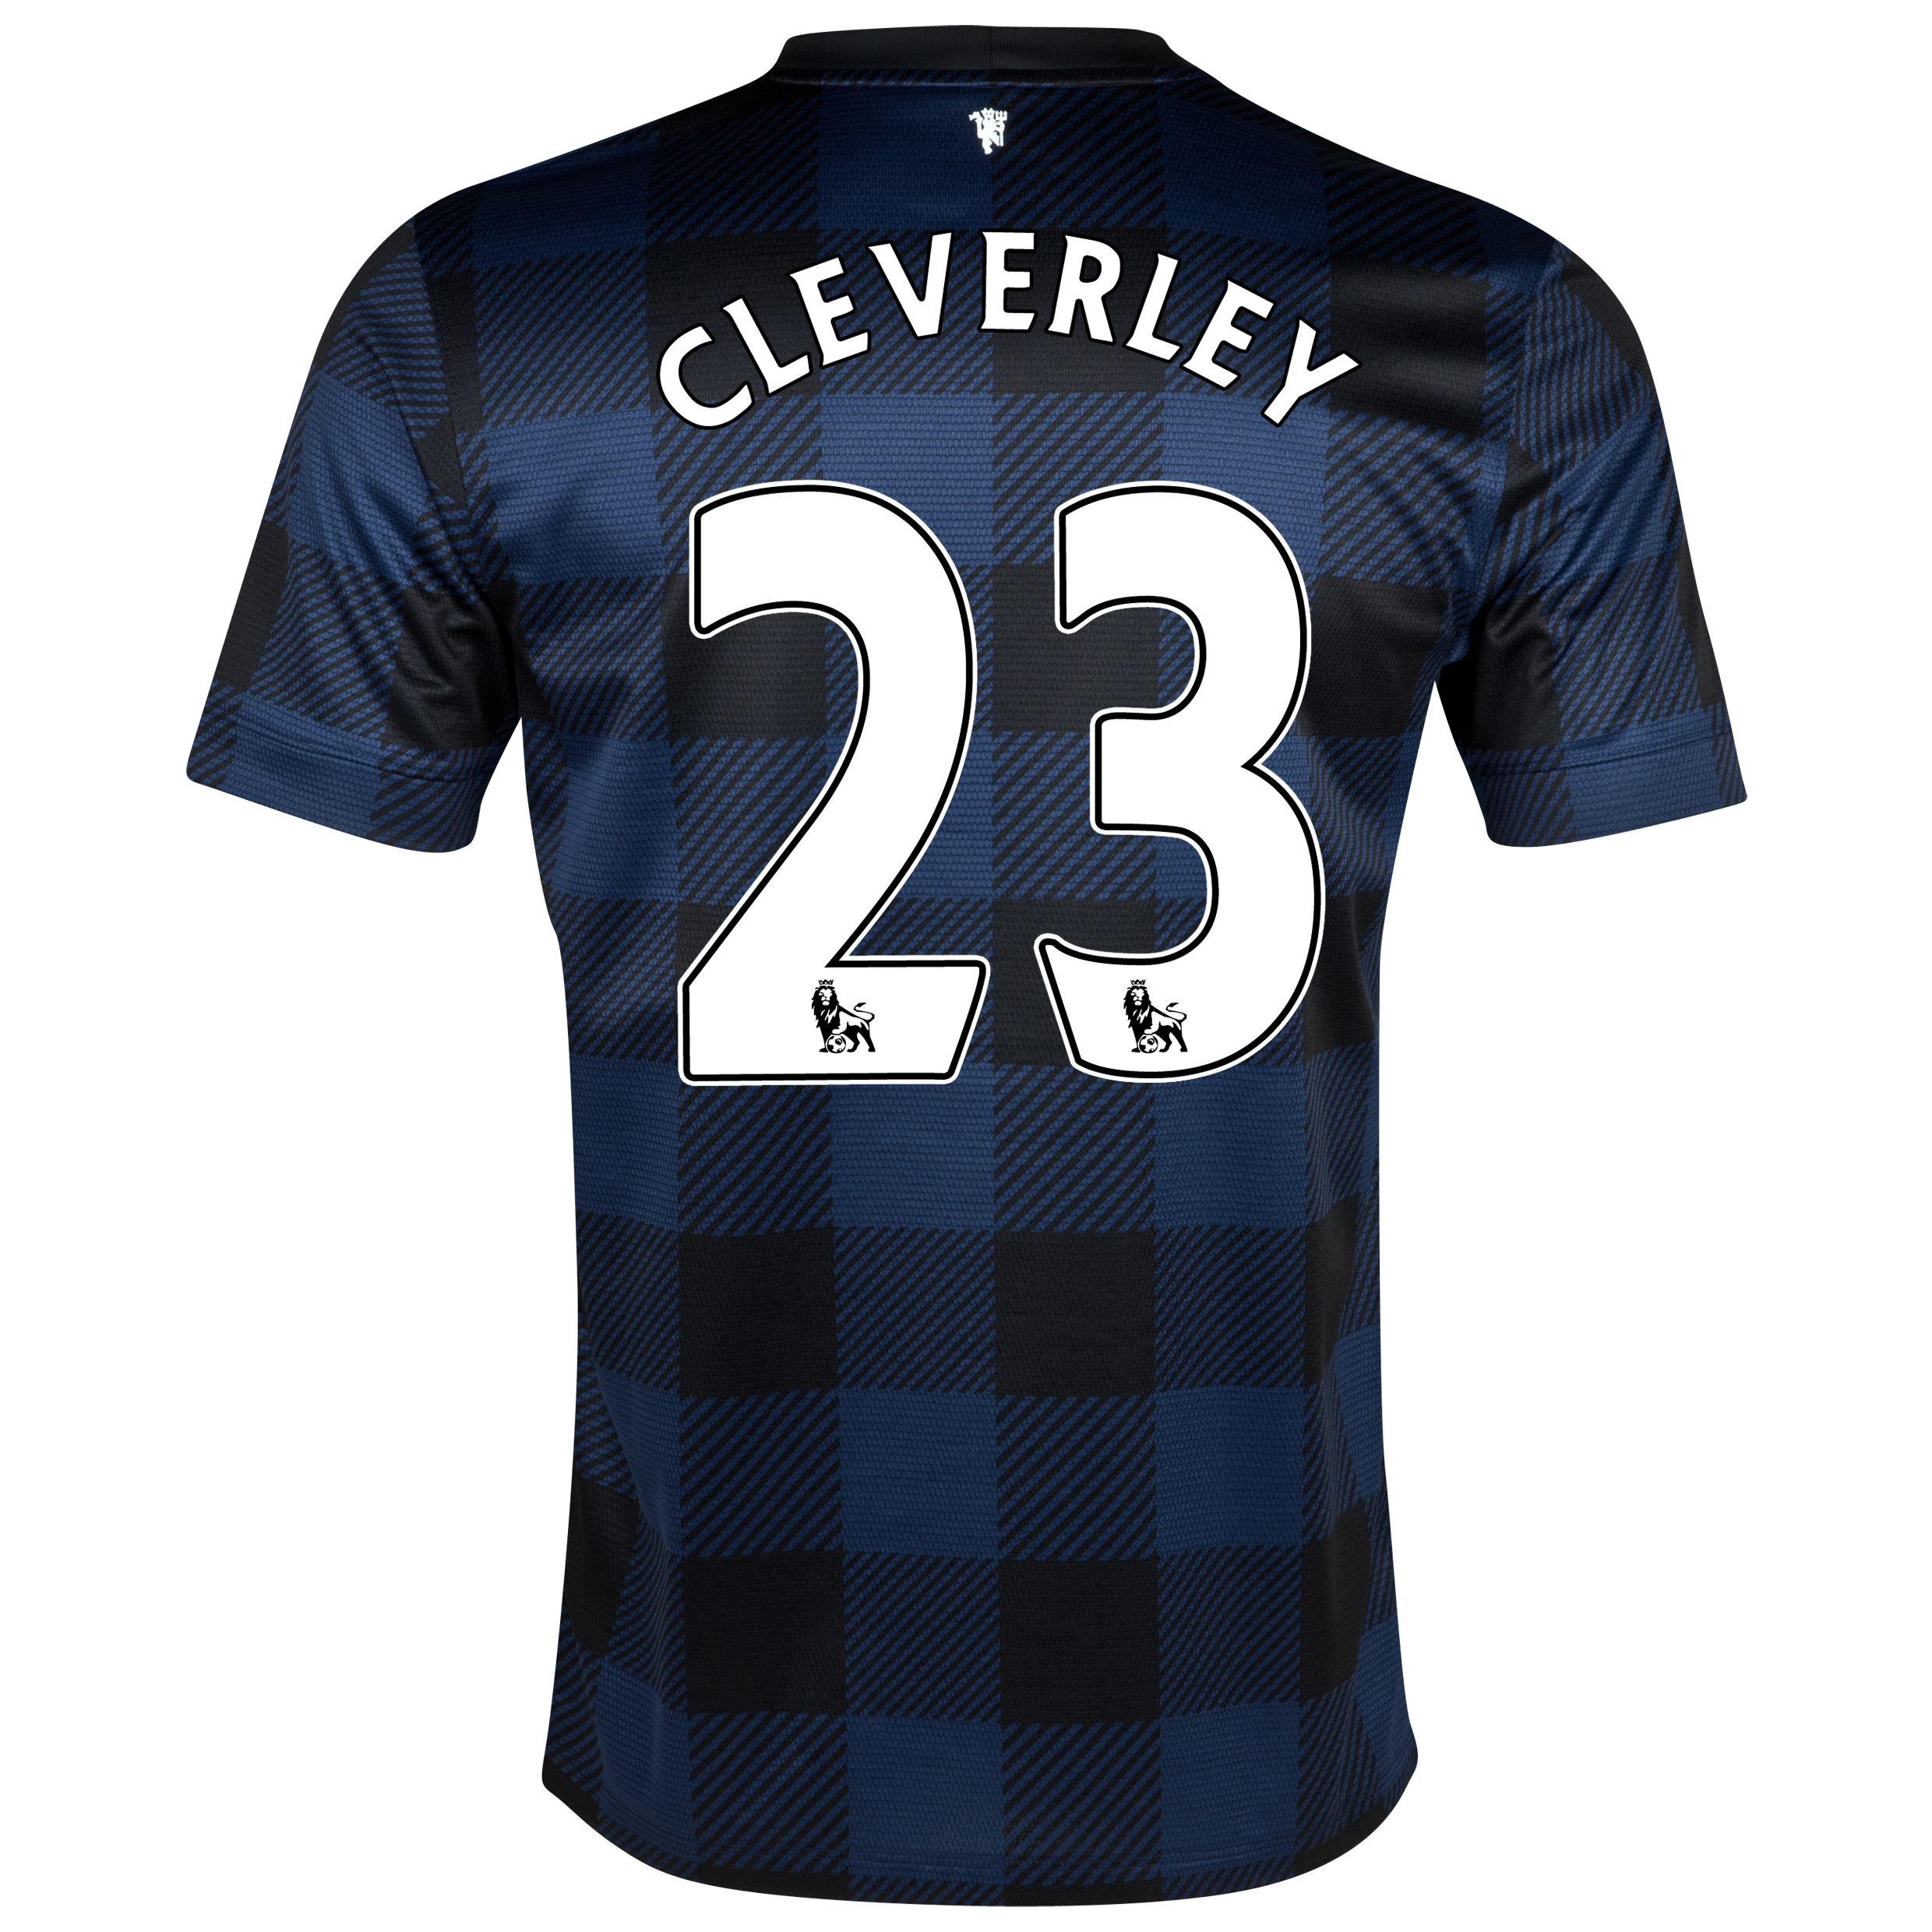 Manchester United Away Shirt 2013/14 with Cleverley 23 printing